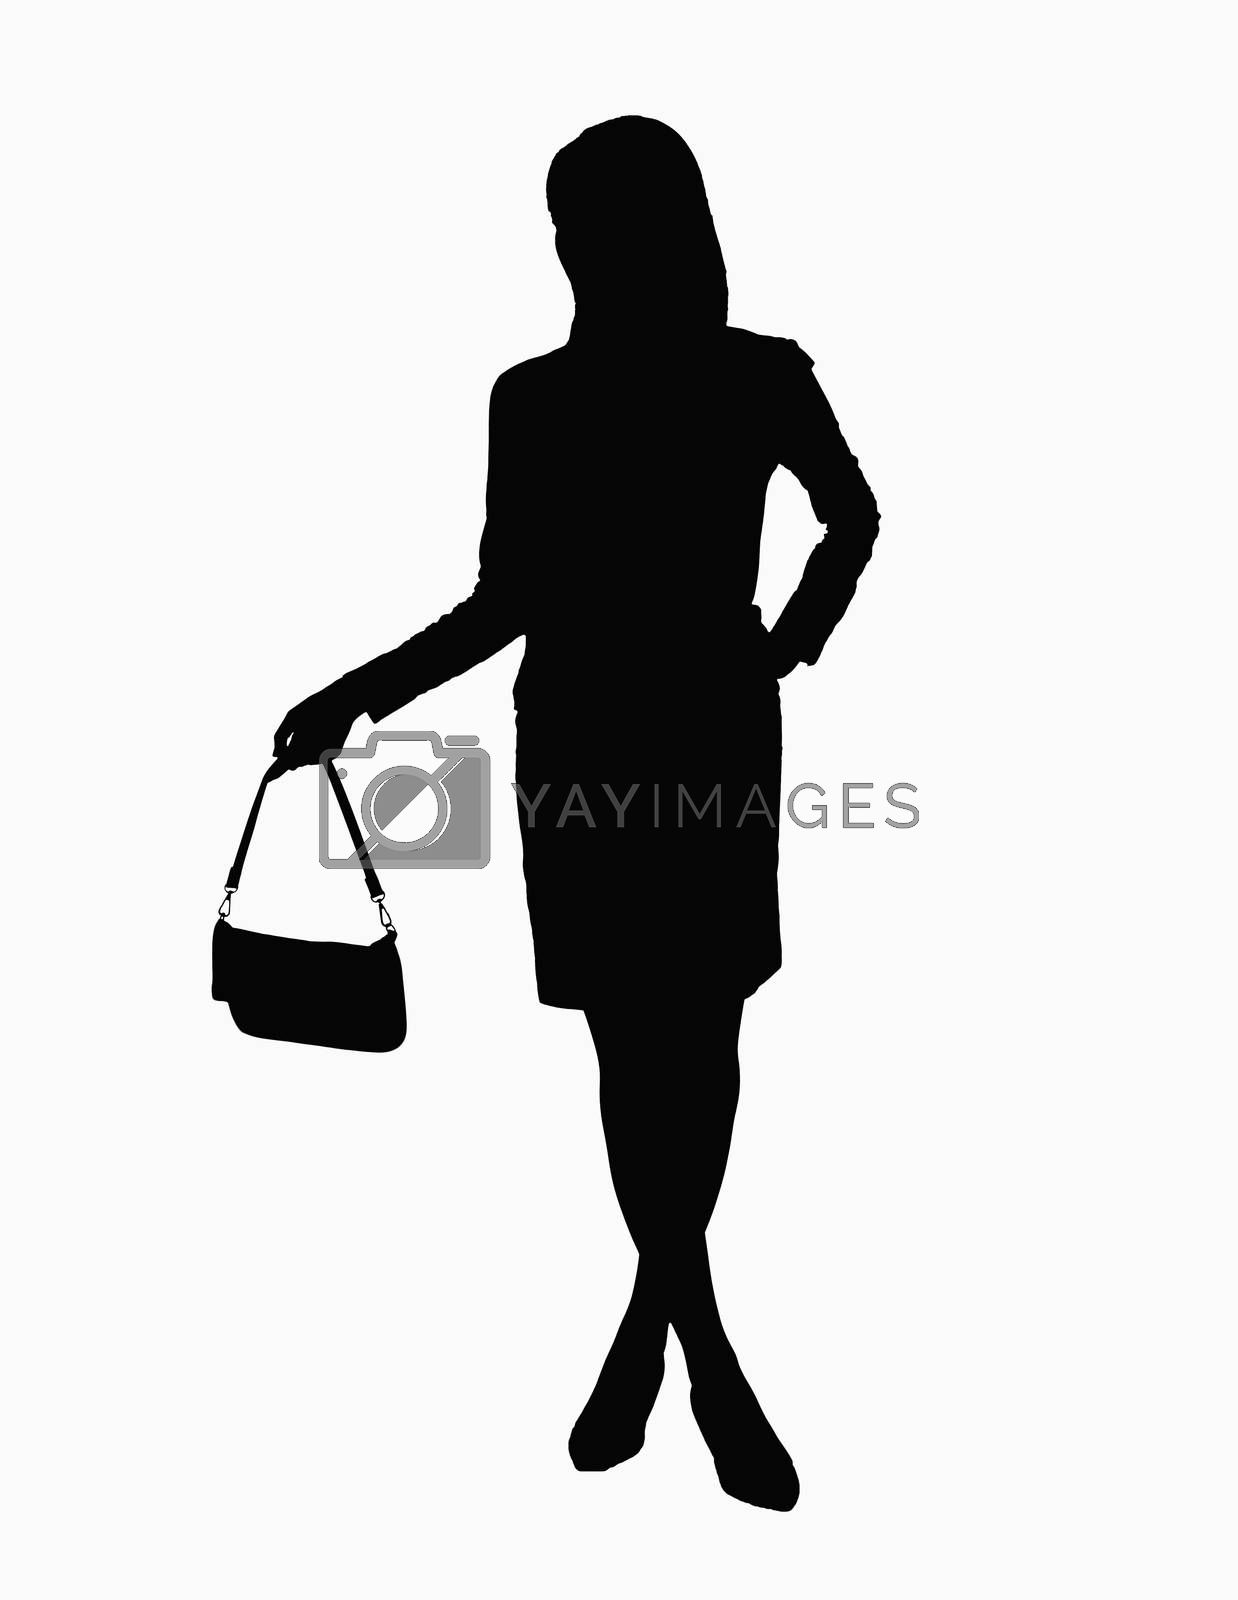 Silhouette of businesswoman holding handbag.